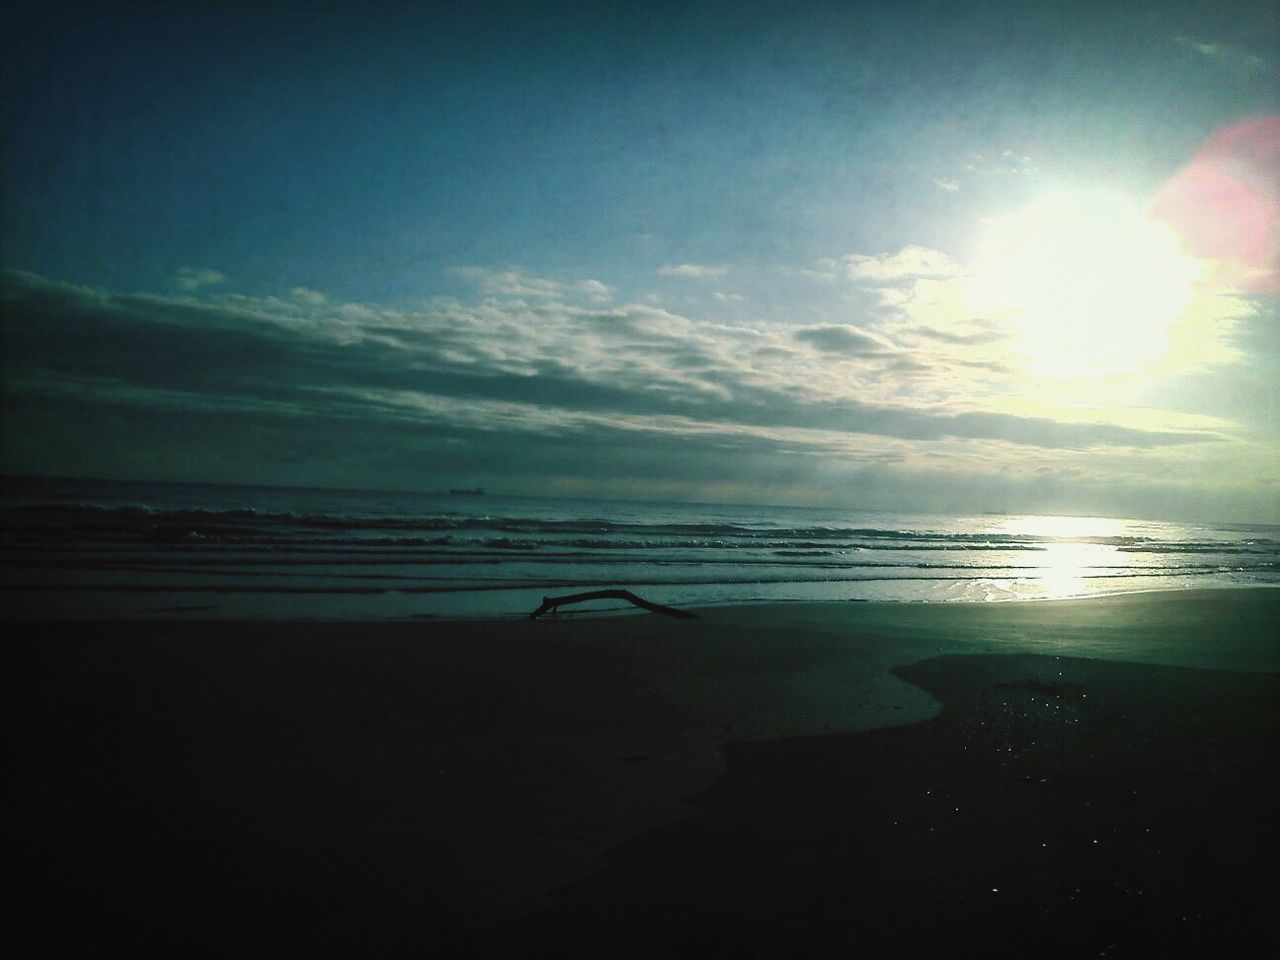 sea, nature, water, beach, sky, sun, beauty in nature, sunbeam, horizon over water, scenics, sunlight, tranquil scene, tranquility, outdoors, silhouette, sunset, no people, day